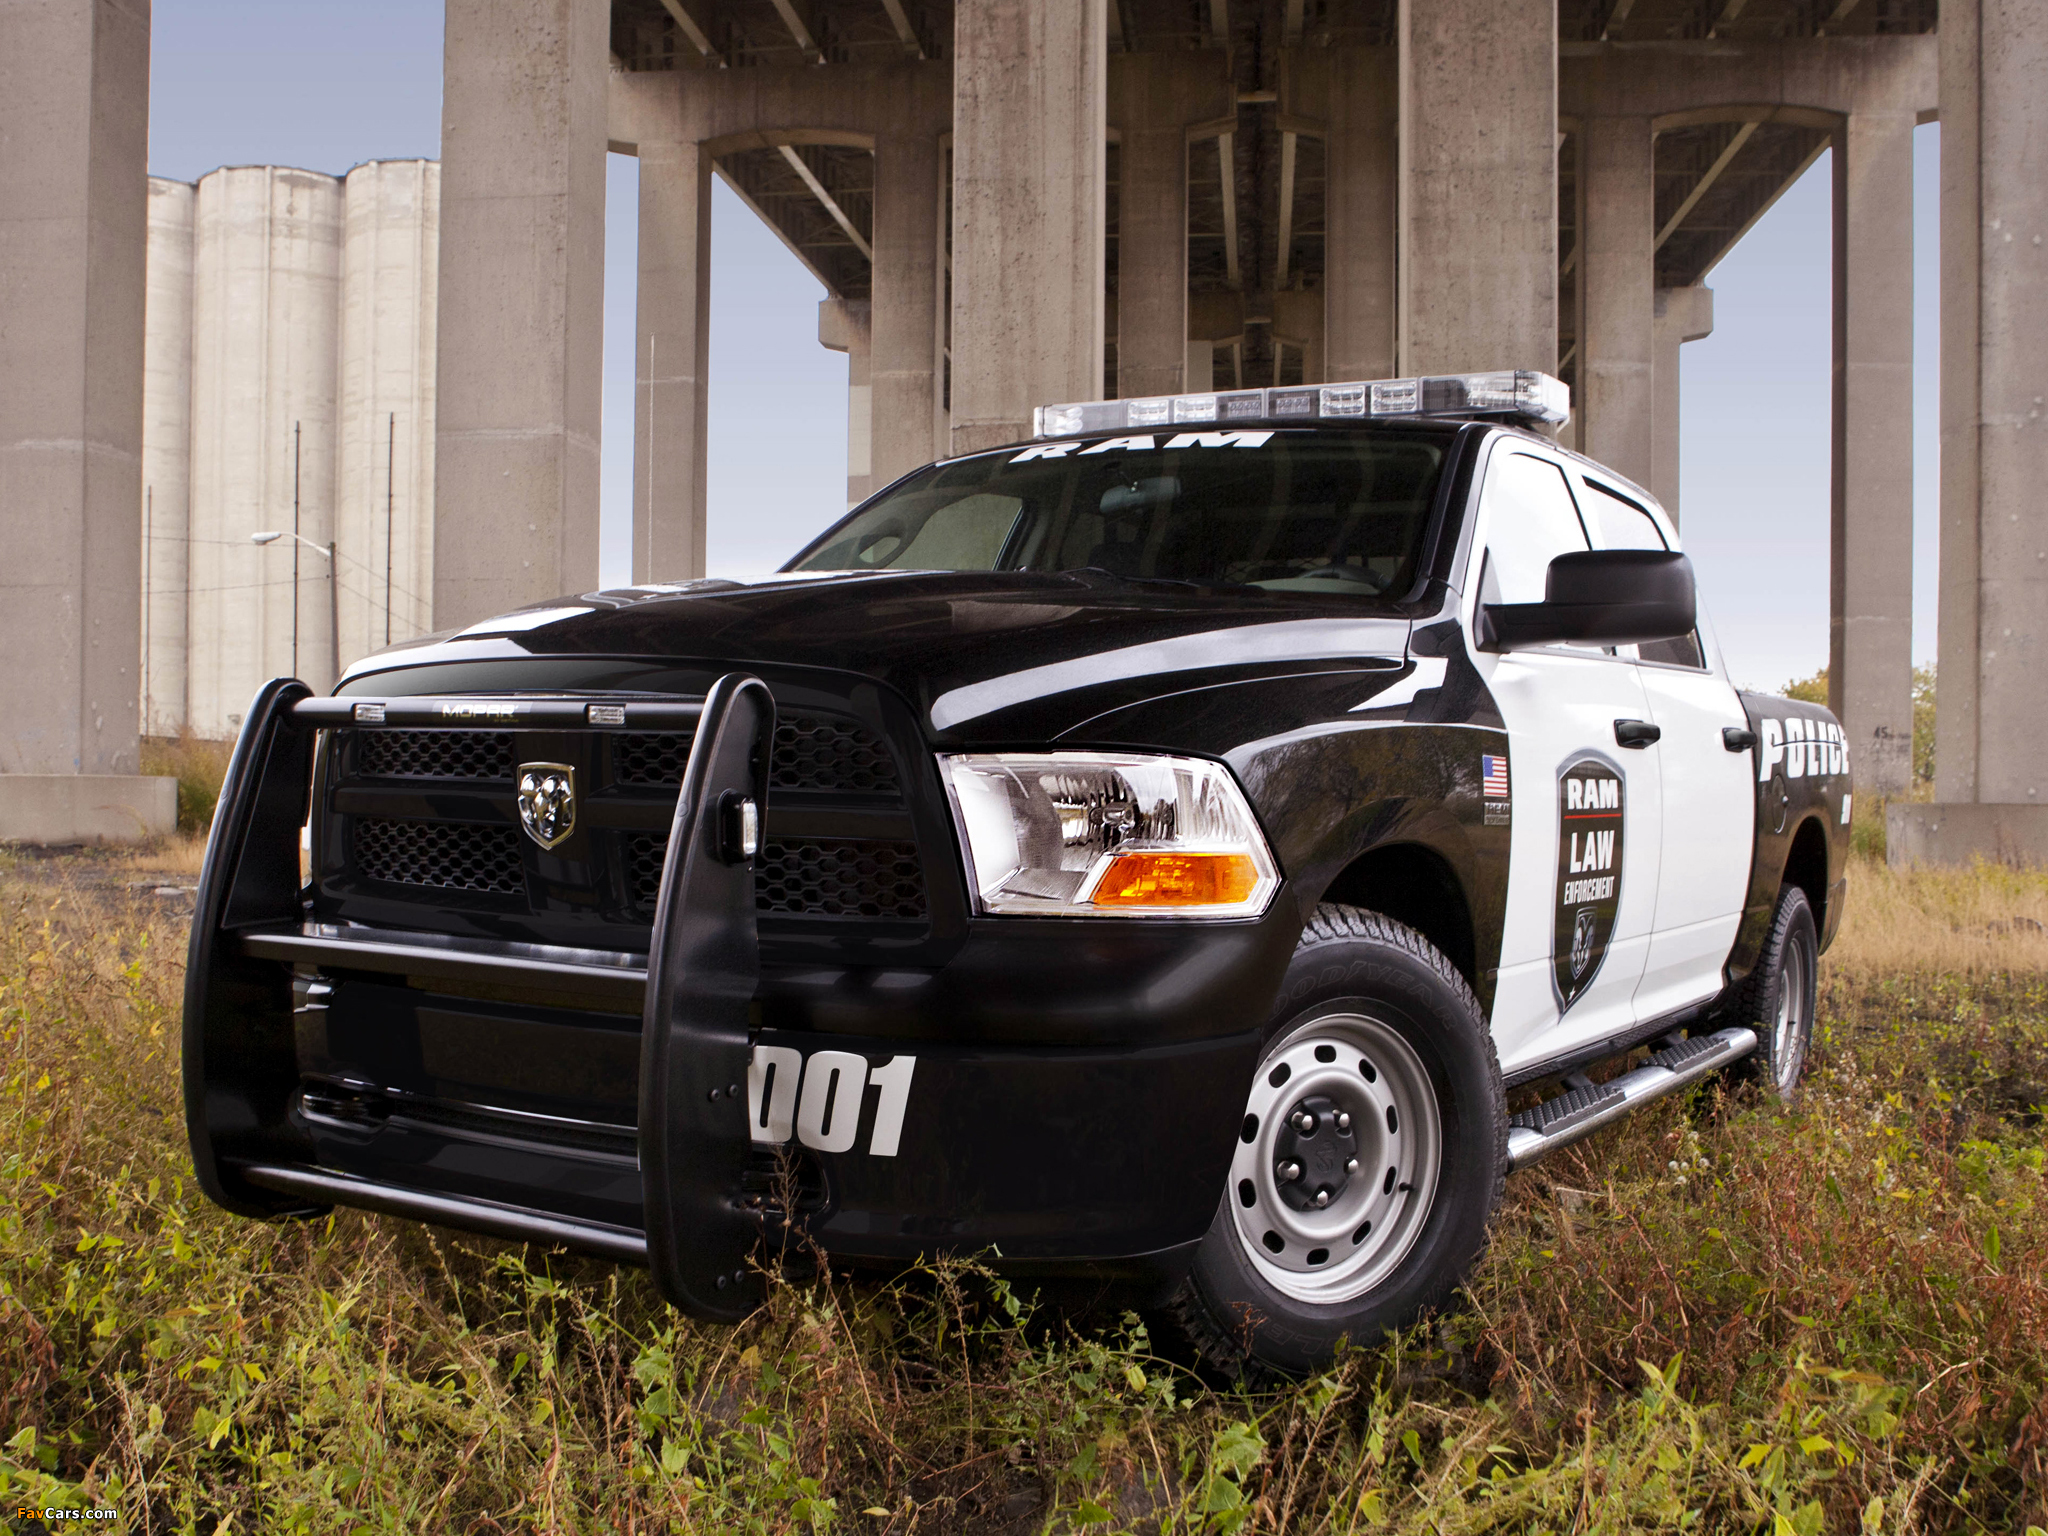 Ram 1500 Crew Cab Special Service Package Police Truck 2011 images (2048 x 1536)